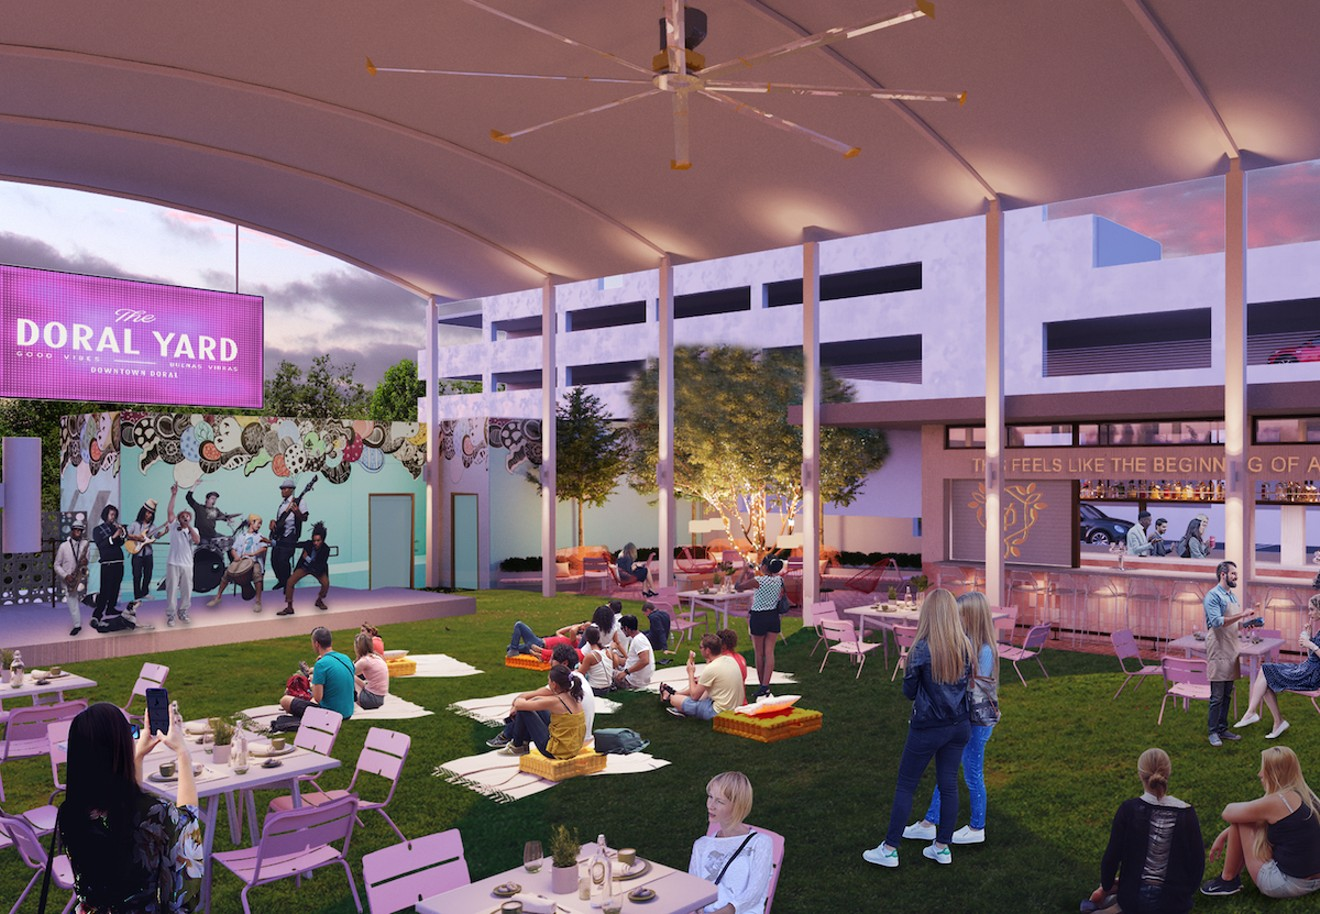 """The Doral Yard will soon unveil """"The Backyard,"""" an outdoor expansion."""